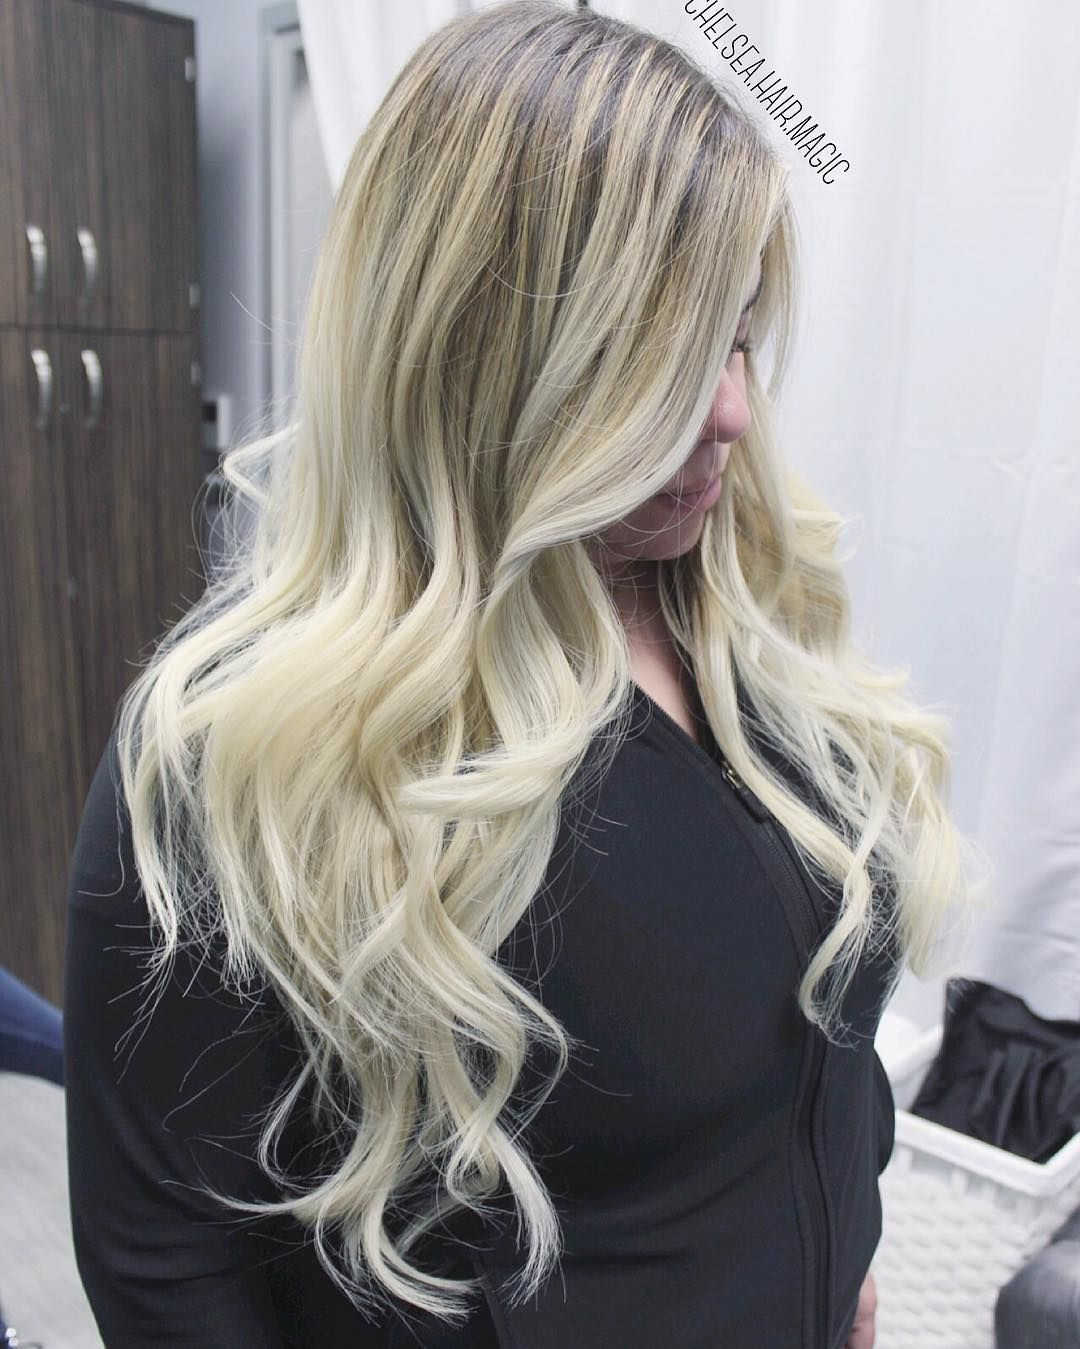 2 sessions Rooty blonde from dark brown hair  Due to high volume in texts please be patient and allow up to 3 days for response! Please schedule your apts in advance so you insure you have the dates and times that are good for you. I book out pretty quickly! You may text or call (281)-636-2562 for apts!  #balayage #houstontx #houstonhair #houstonombre #houstonsalon #houstonsbest #houstonbalayage #houstoncolorist #houstoncolorspecialist #houstonhaircolor #houstonhairstylist #houstonhairsalon…